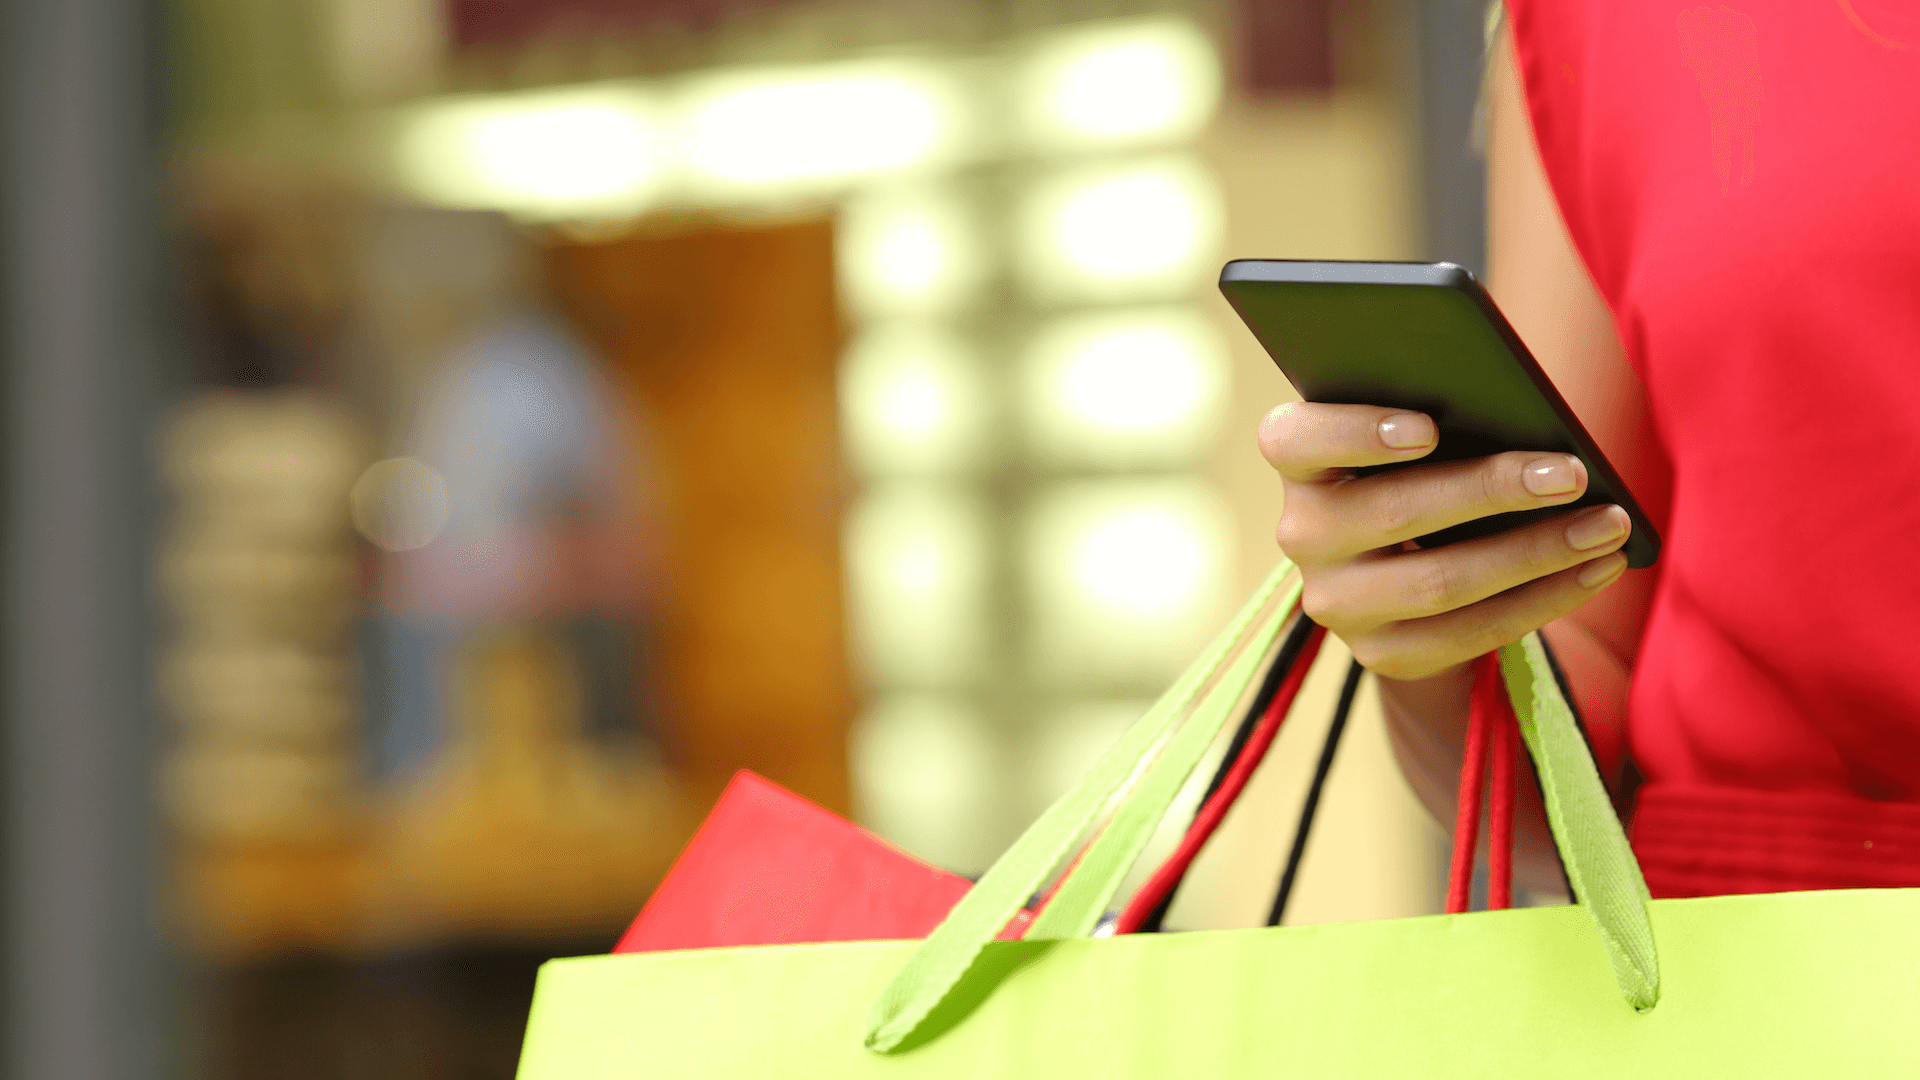 phone and shopping bags